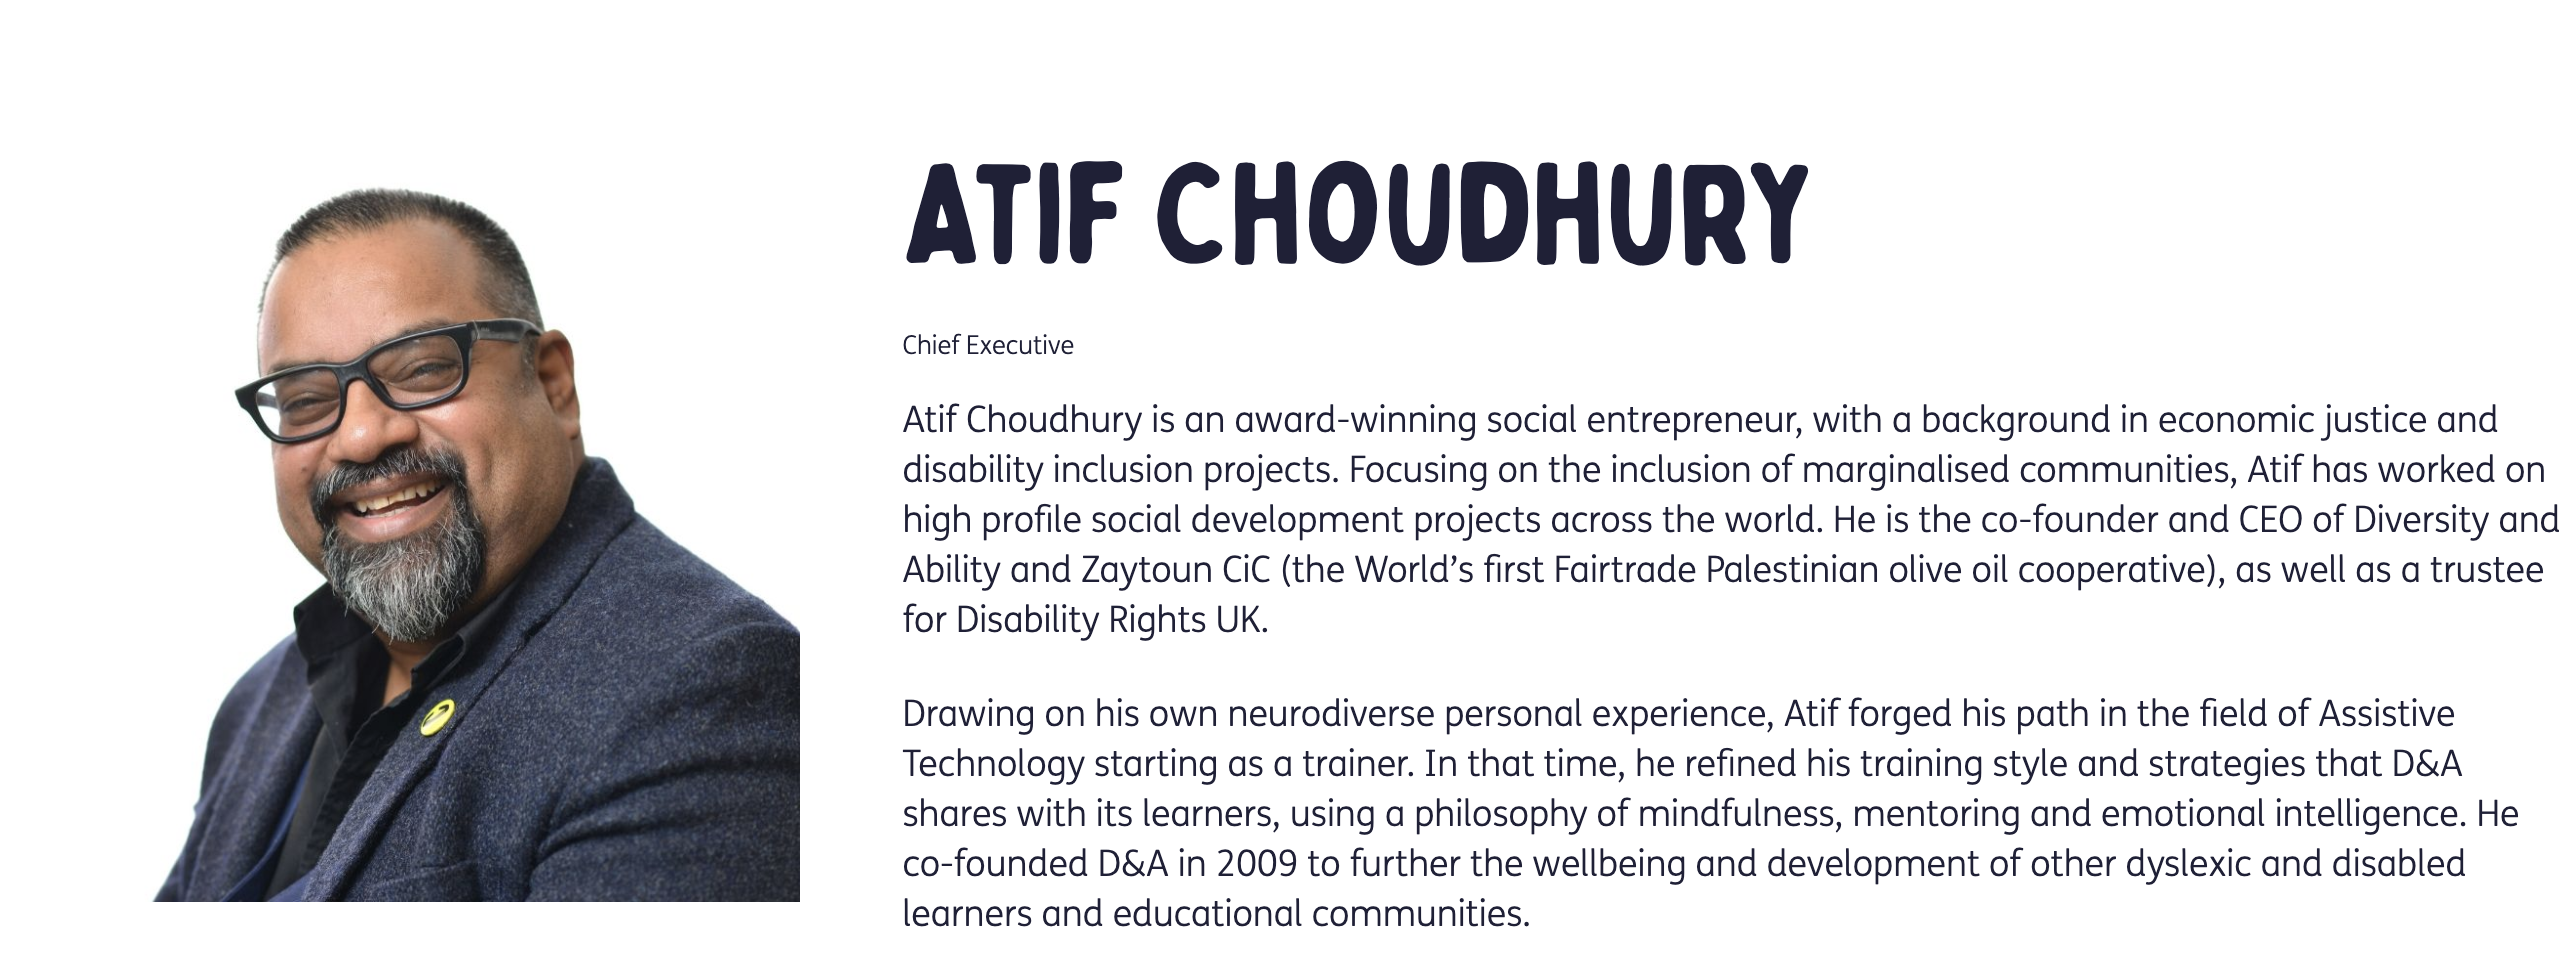 A picture of Atif and his biography from the D&A website